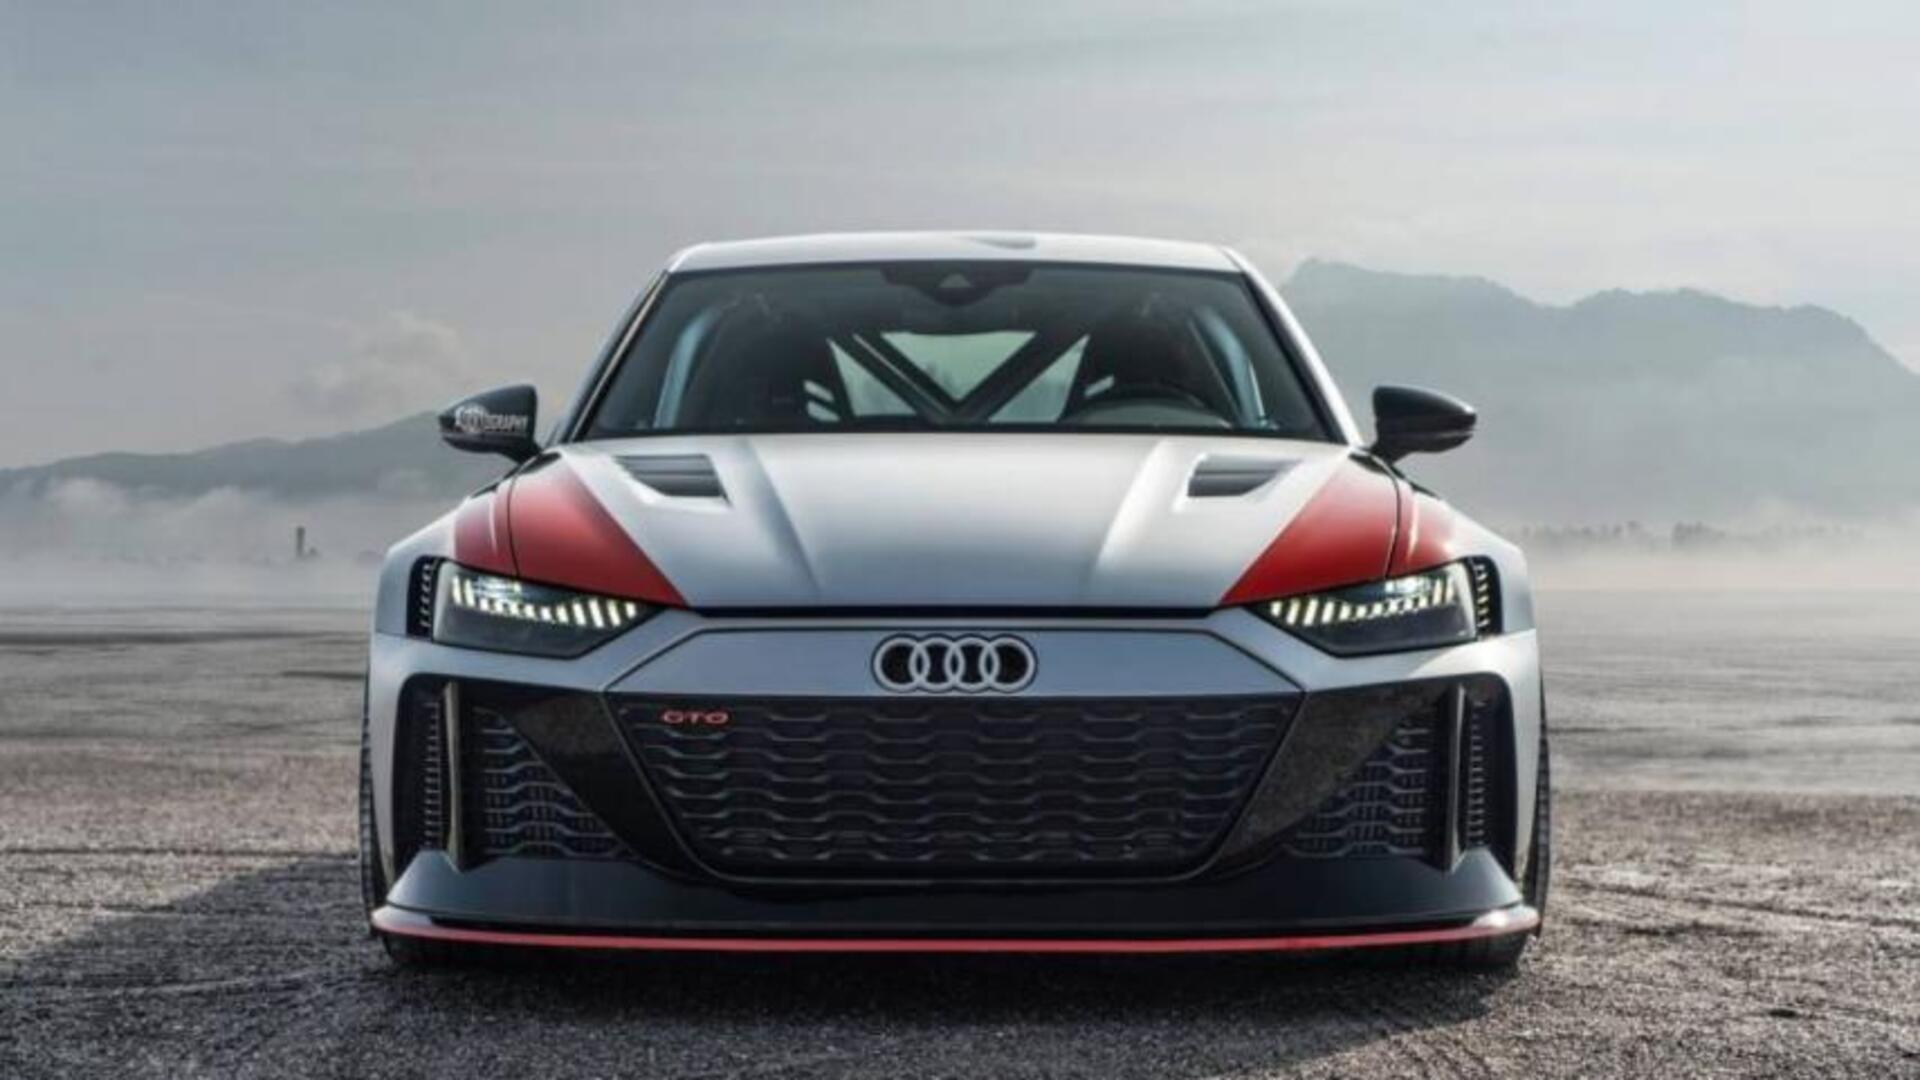 Video Ruge Audi Rs6 Gto Copy 2